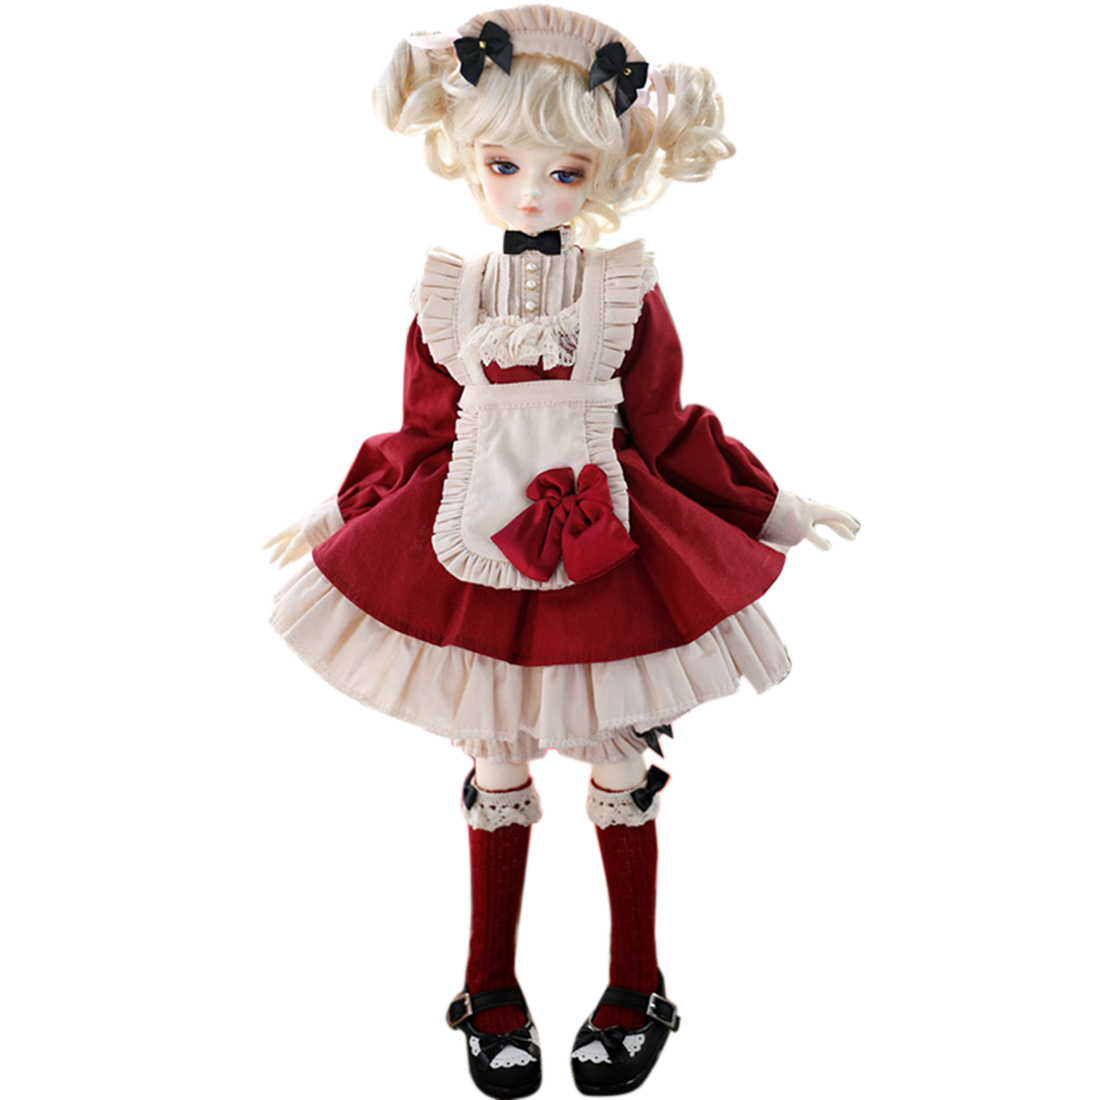 5Pcs Maid Apron Dress Outfit Set For 1:3 1:4 1:6 <font><b>BJD</b></font> Doll (No Doll) Fashion Dolls Toy For Girls Kids Children Adults Best Gift image